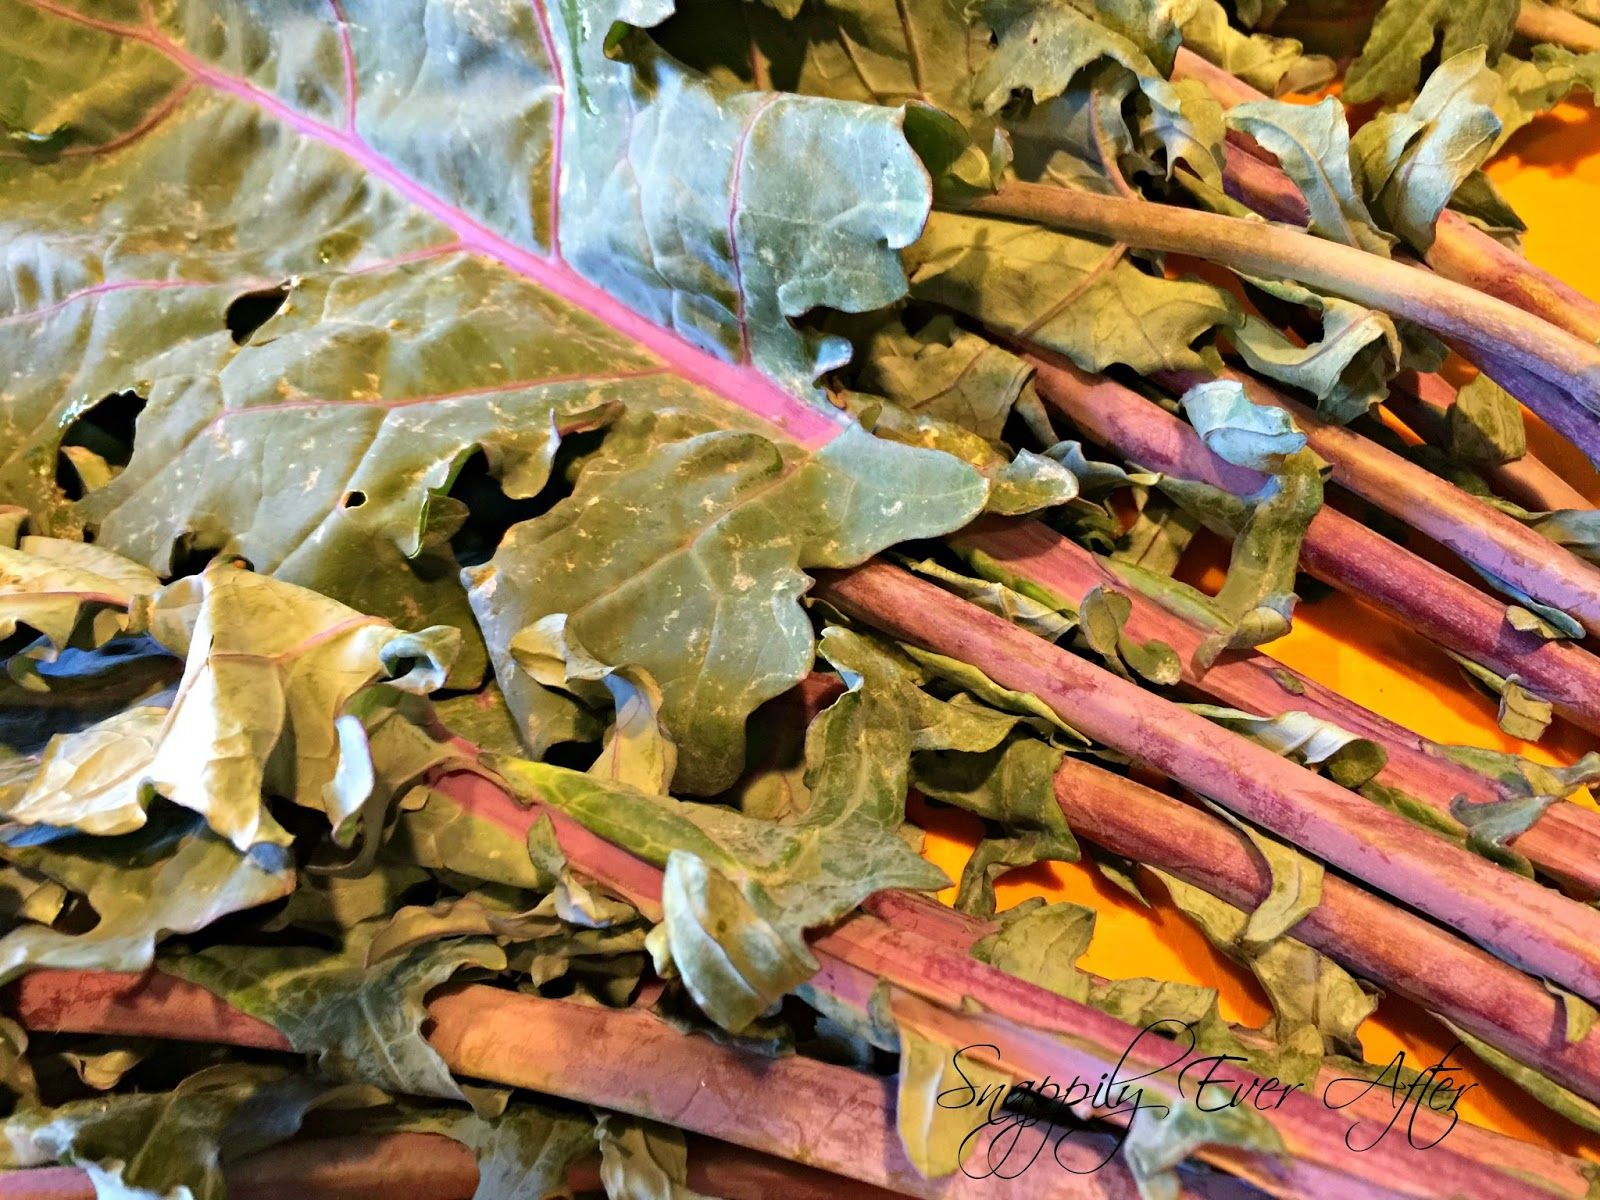 How to clean your kale ahh bugs kale csa box cleaning